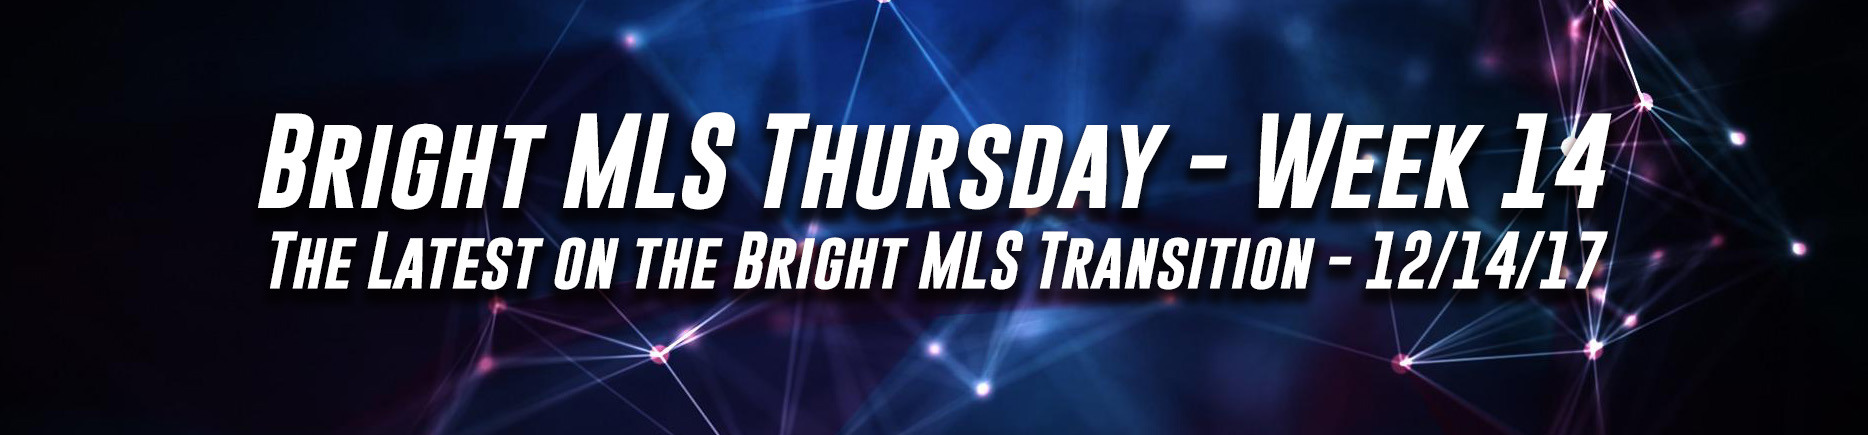 bright-mls-thursday